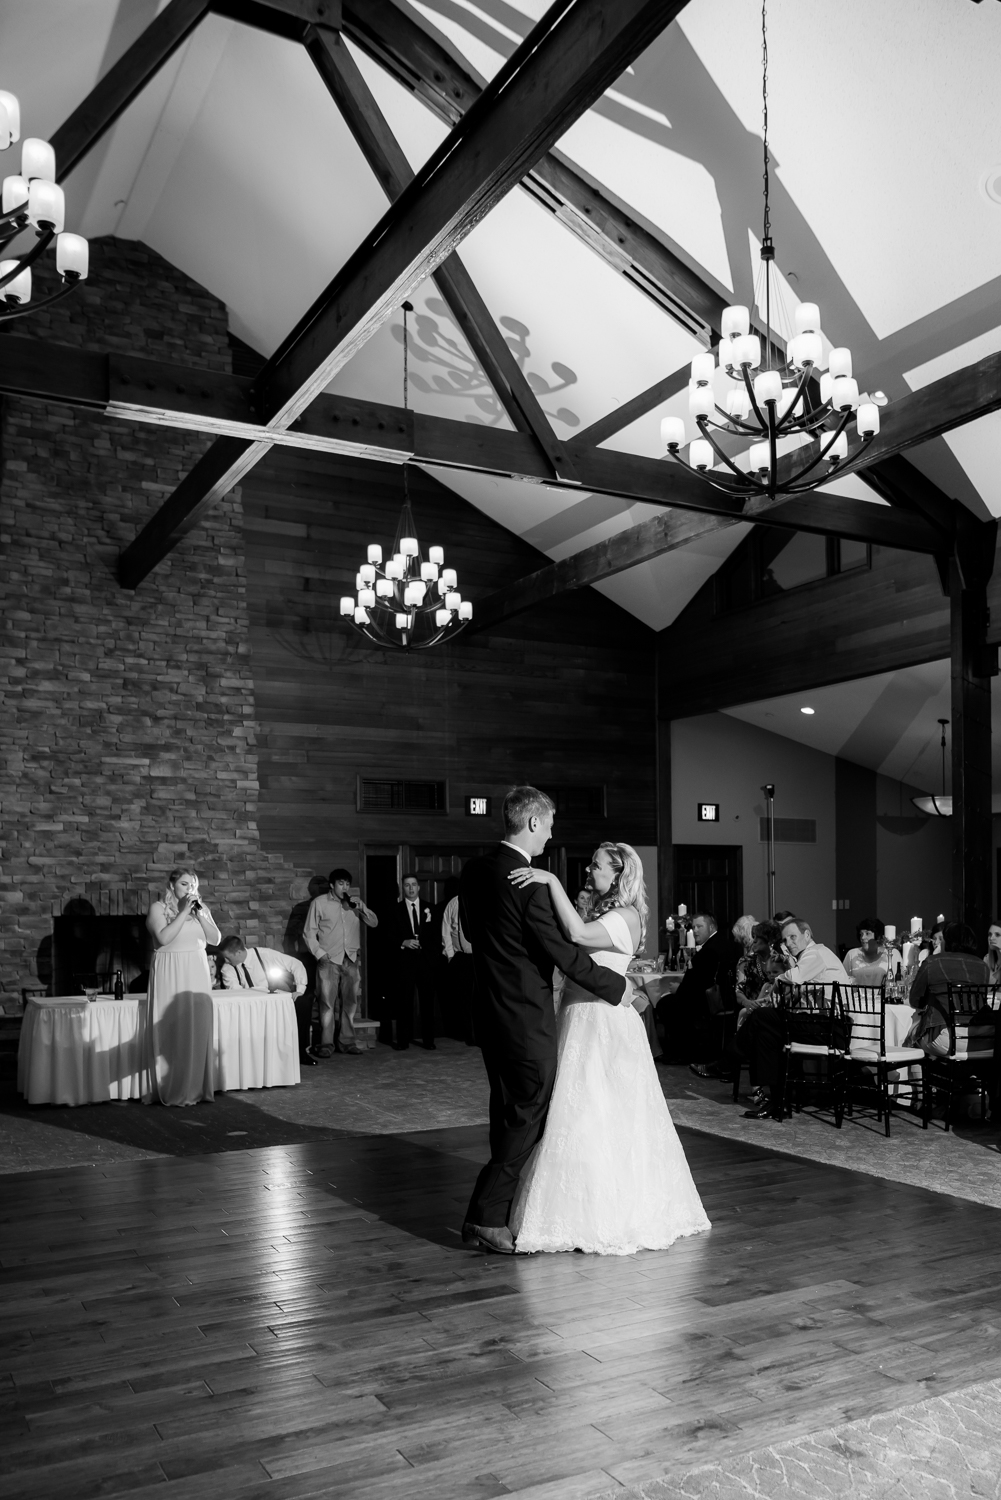 Bolla_Photography_St_Louis_wedding_photographer-0515.jpg